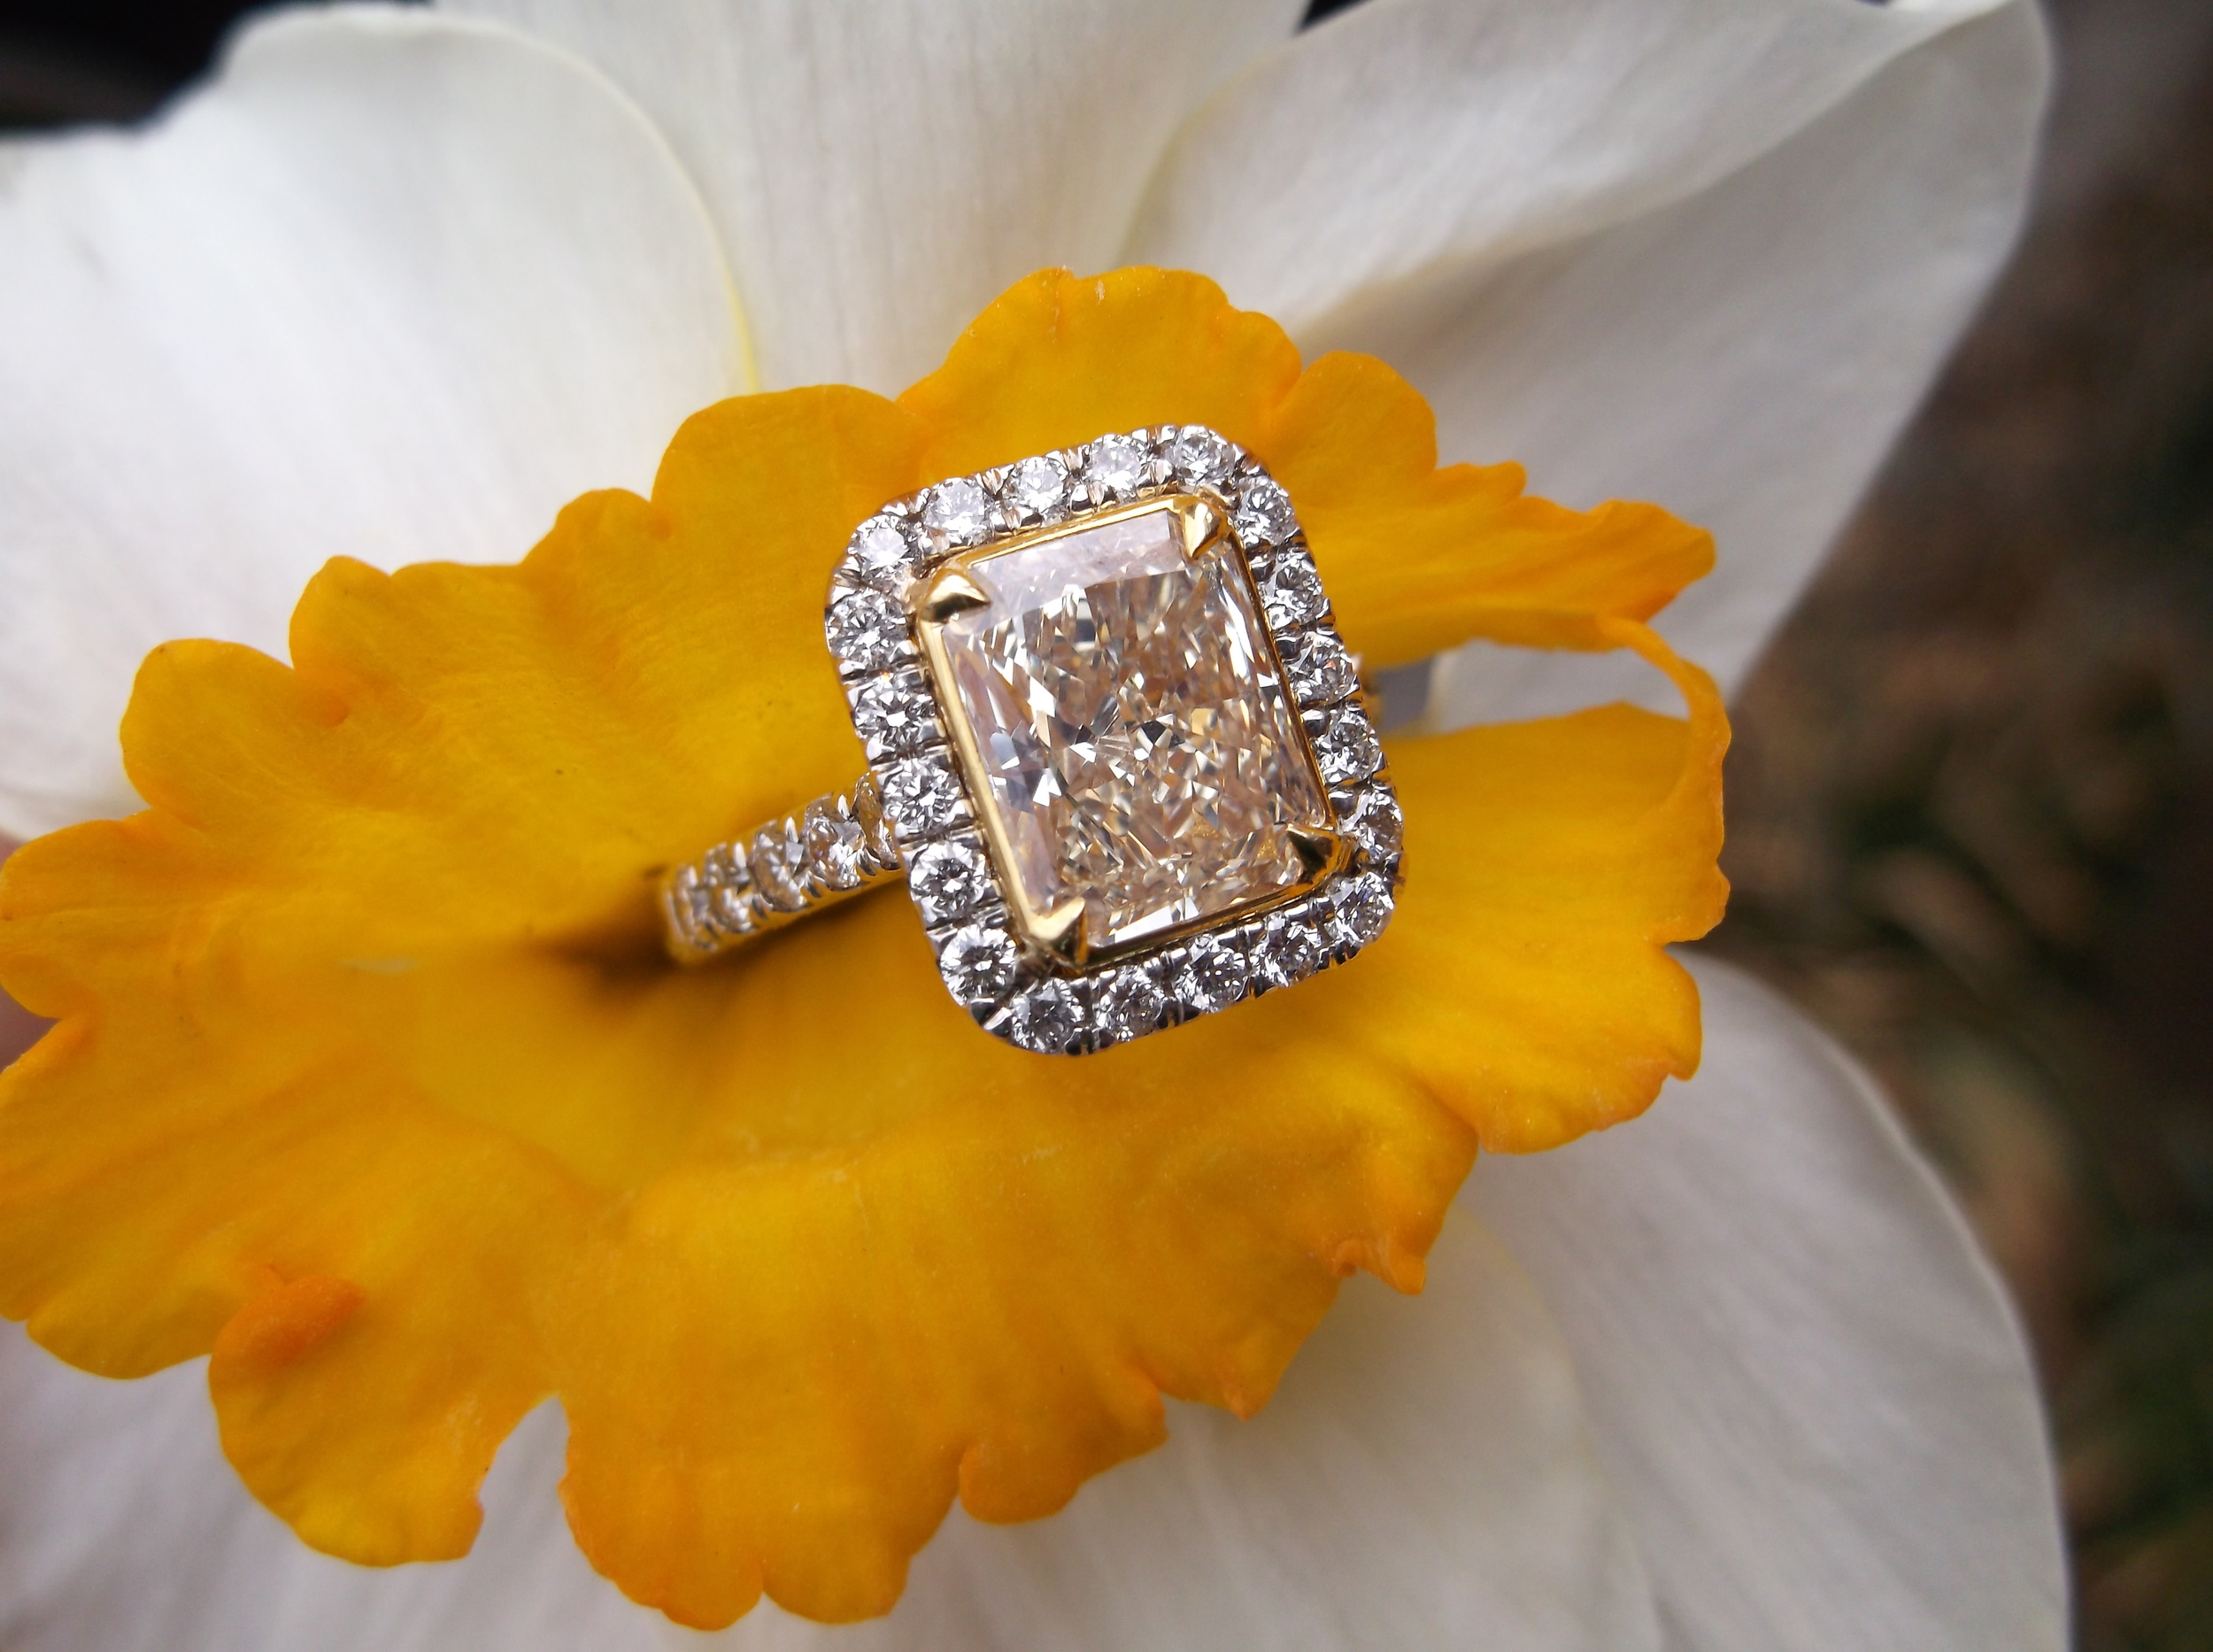 SOLD - Divine 2.36 carat Fancy Intense yellow diamond set in an 18K white gold and diamond mounting.